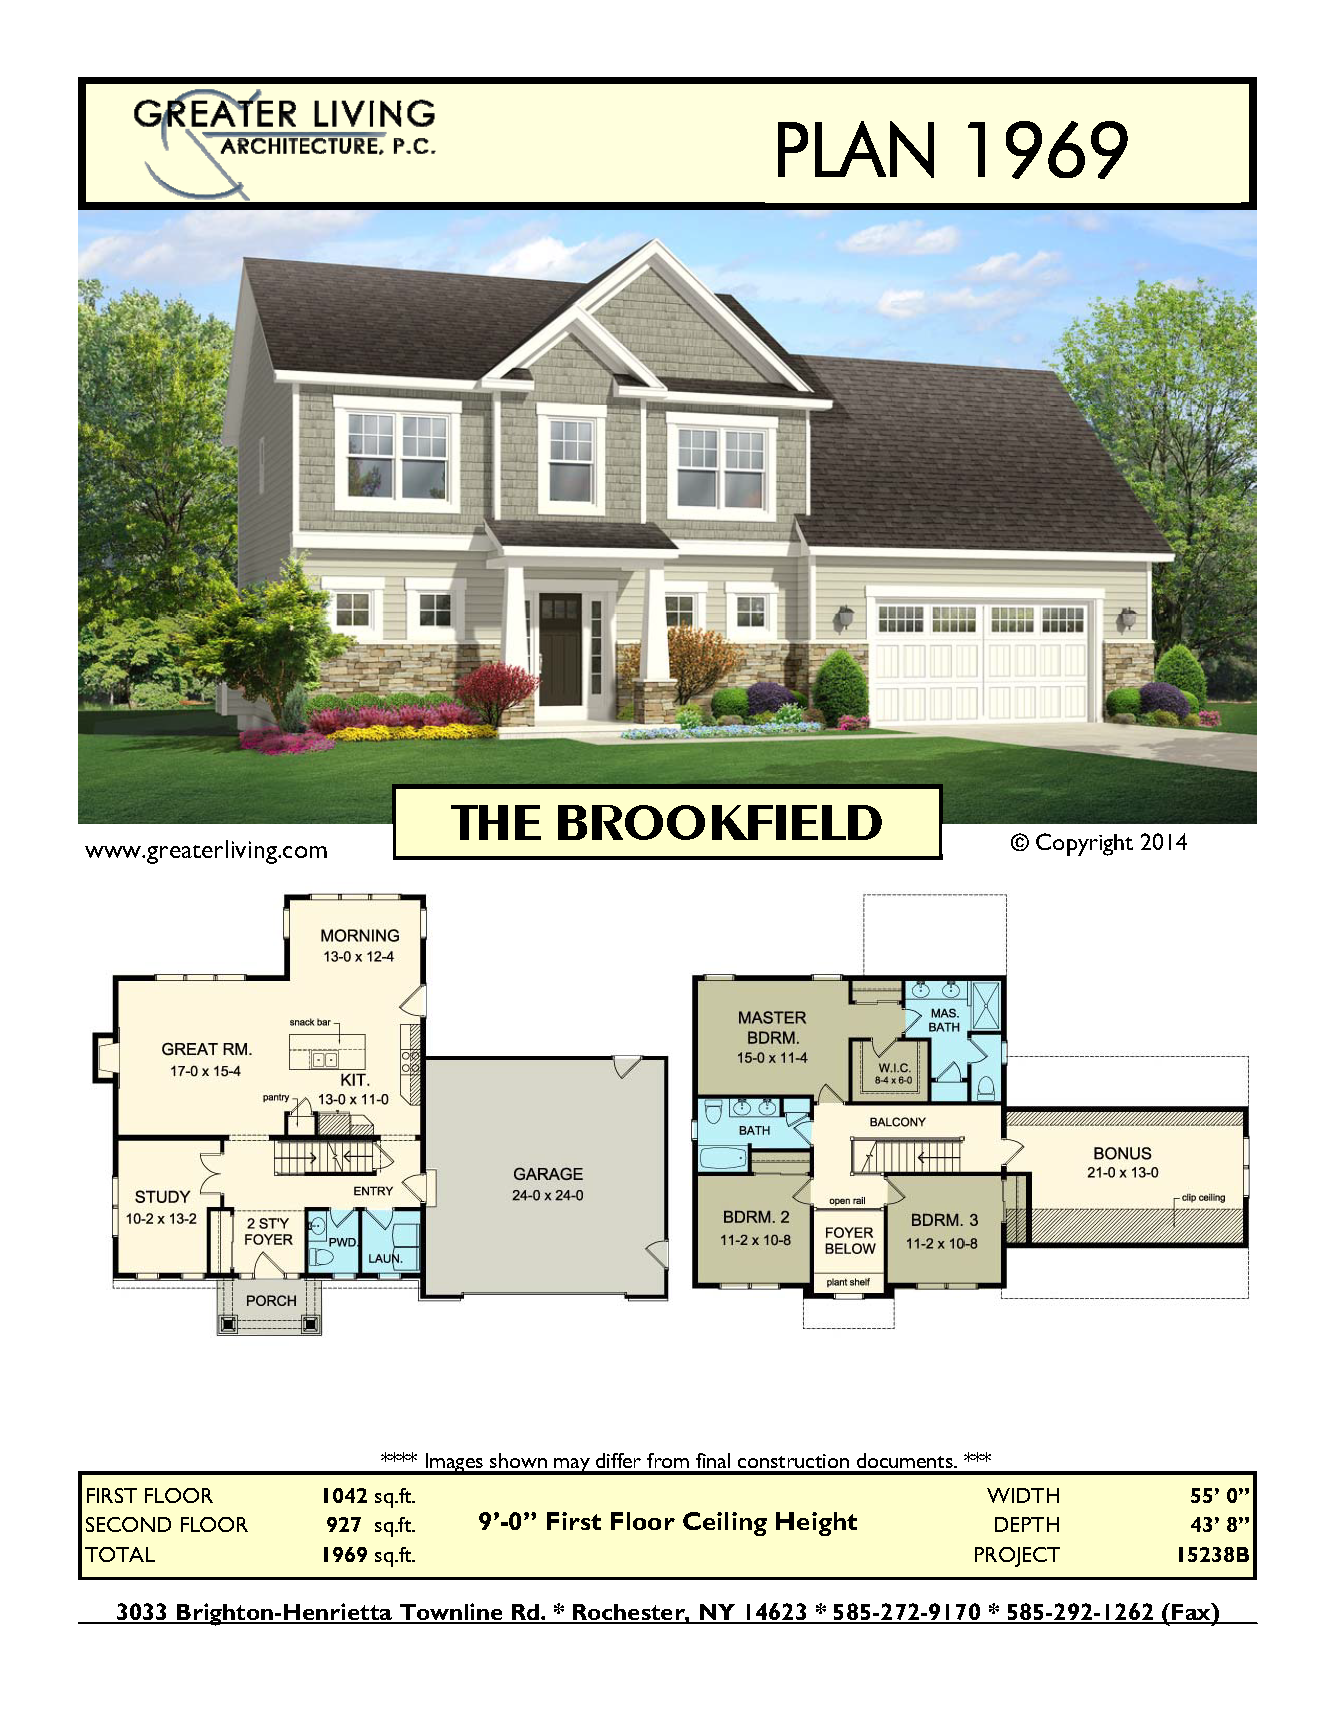 Plan 1969: THE BROOKFIELD | floor plans and layout / home design ...